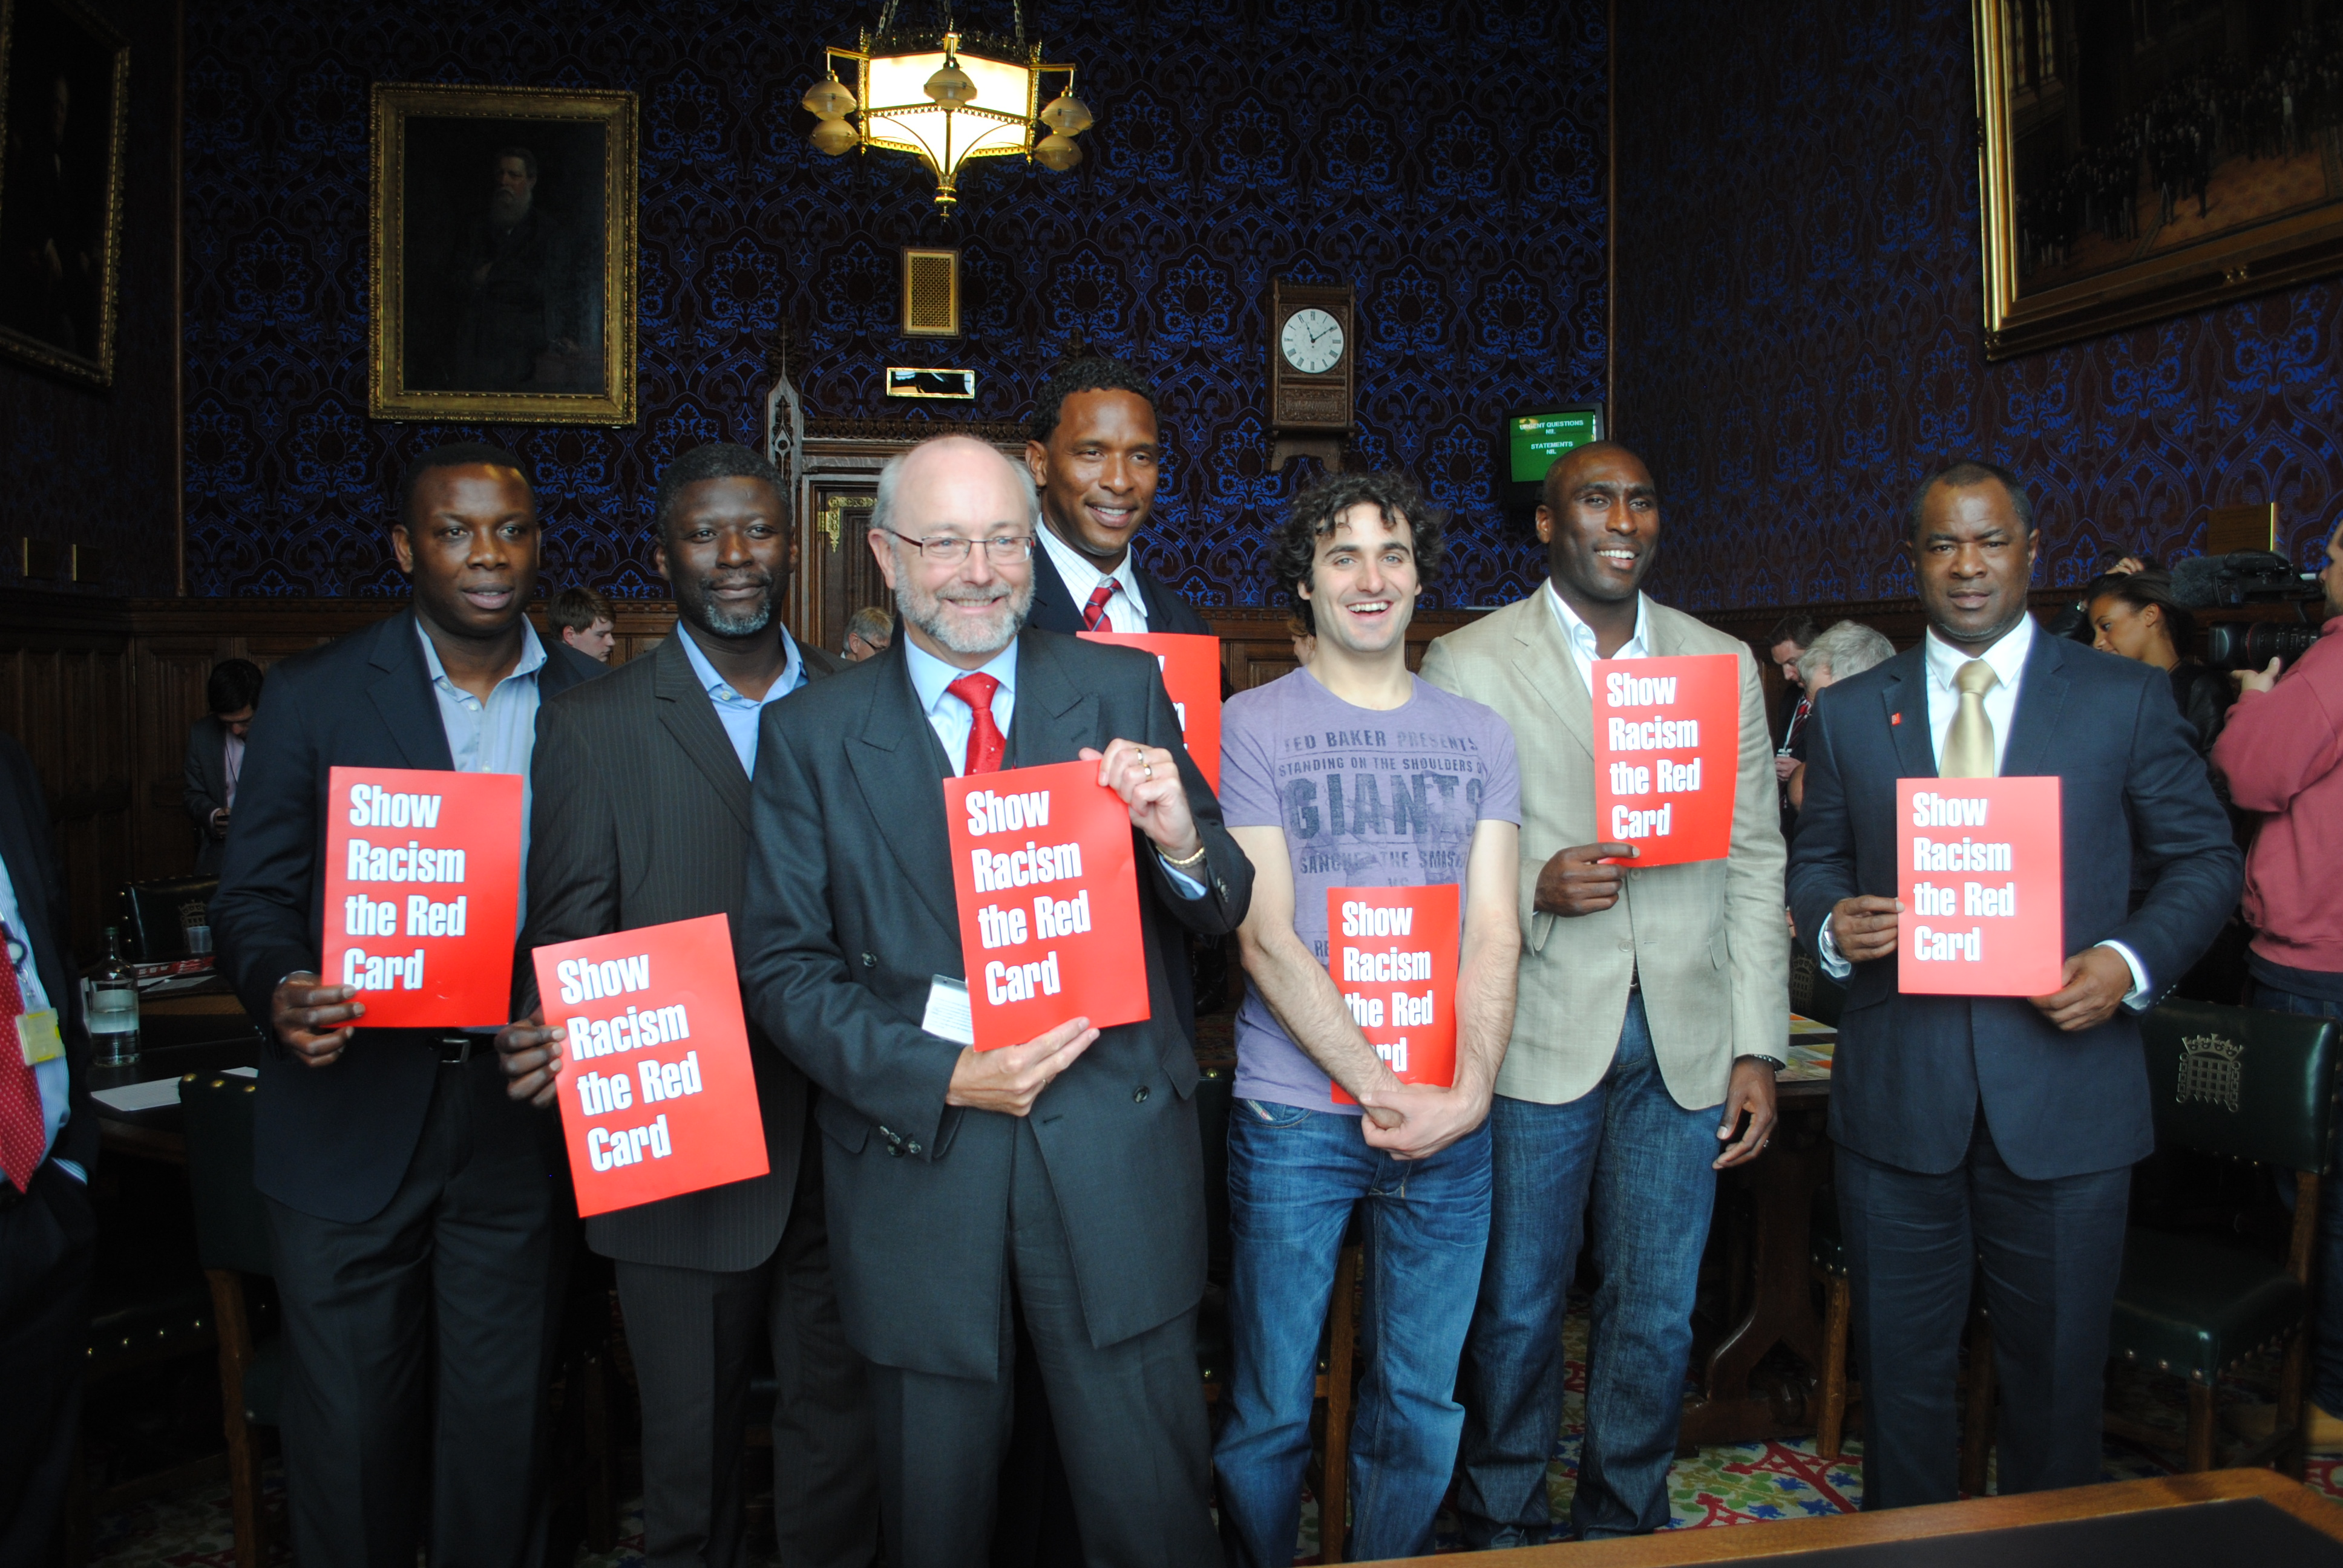 Alex backs calls for funding from the 'Show Racism the Red Card' campaign